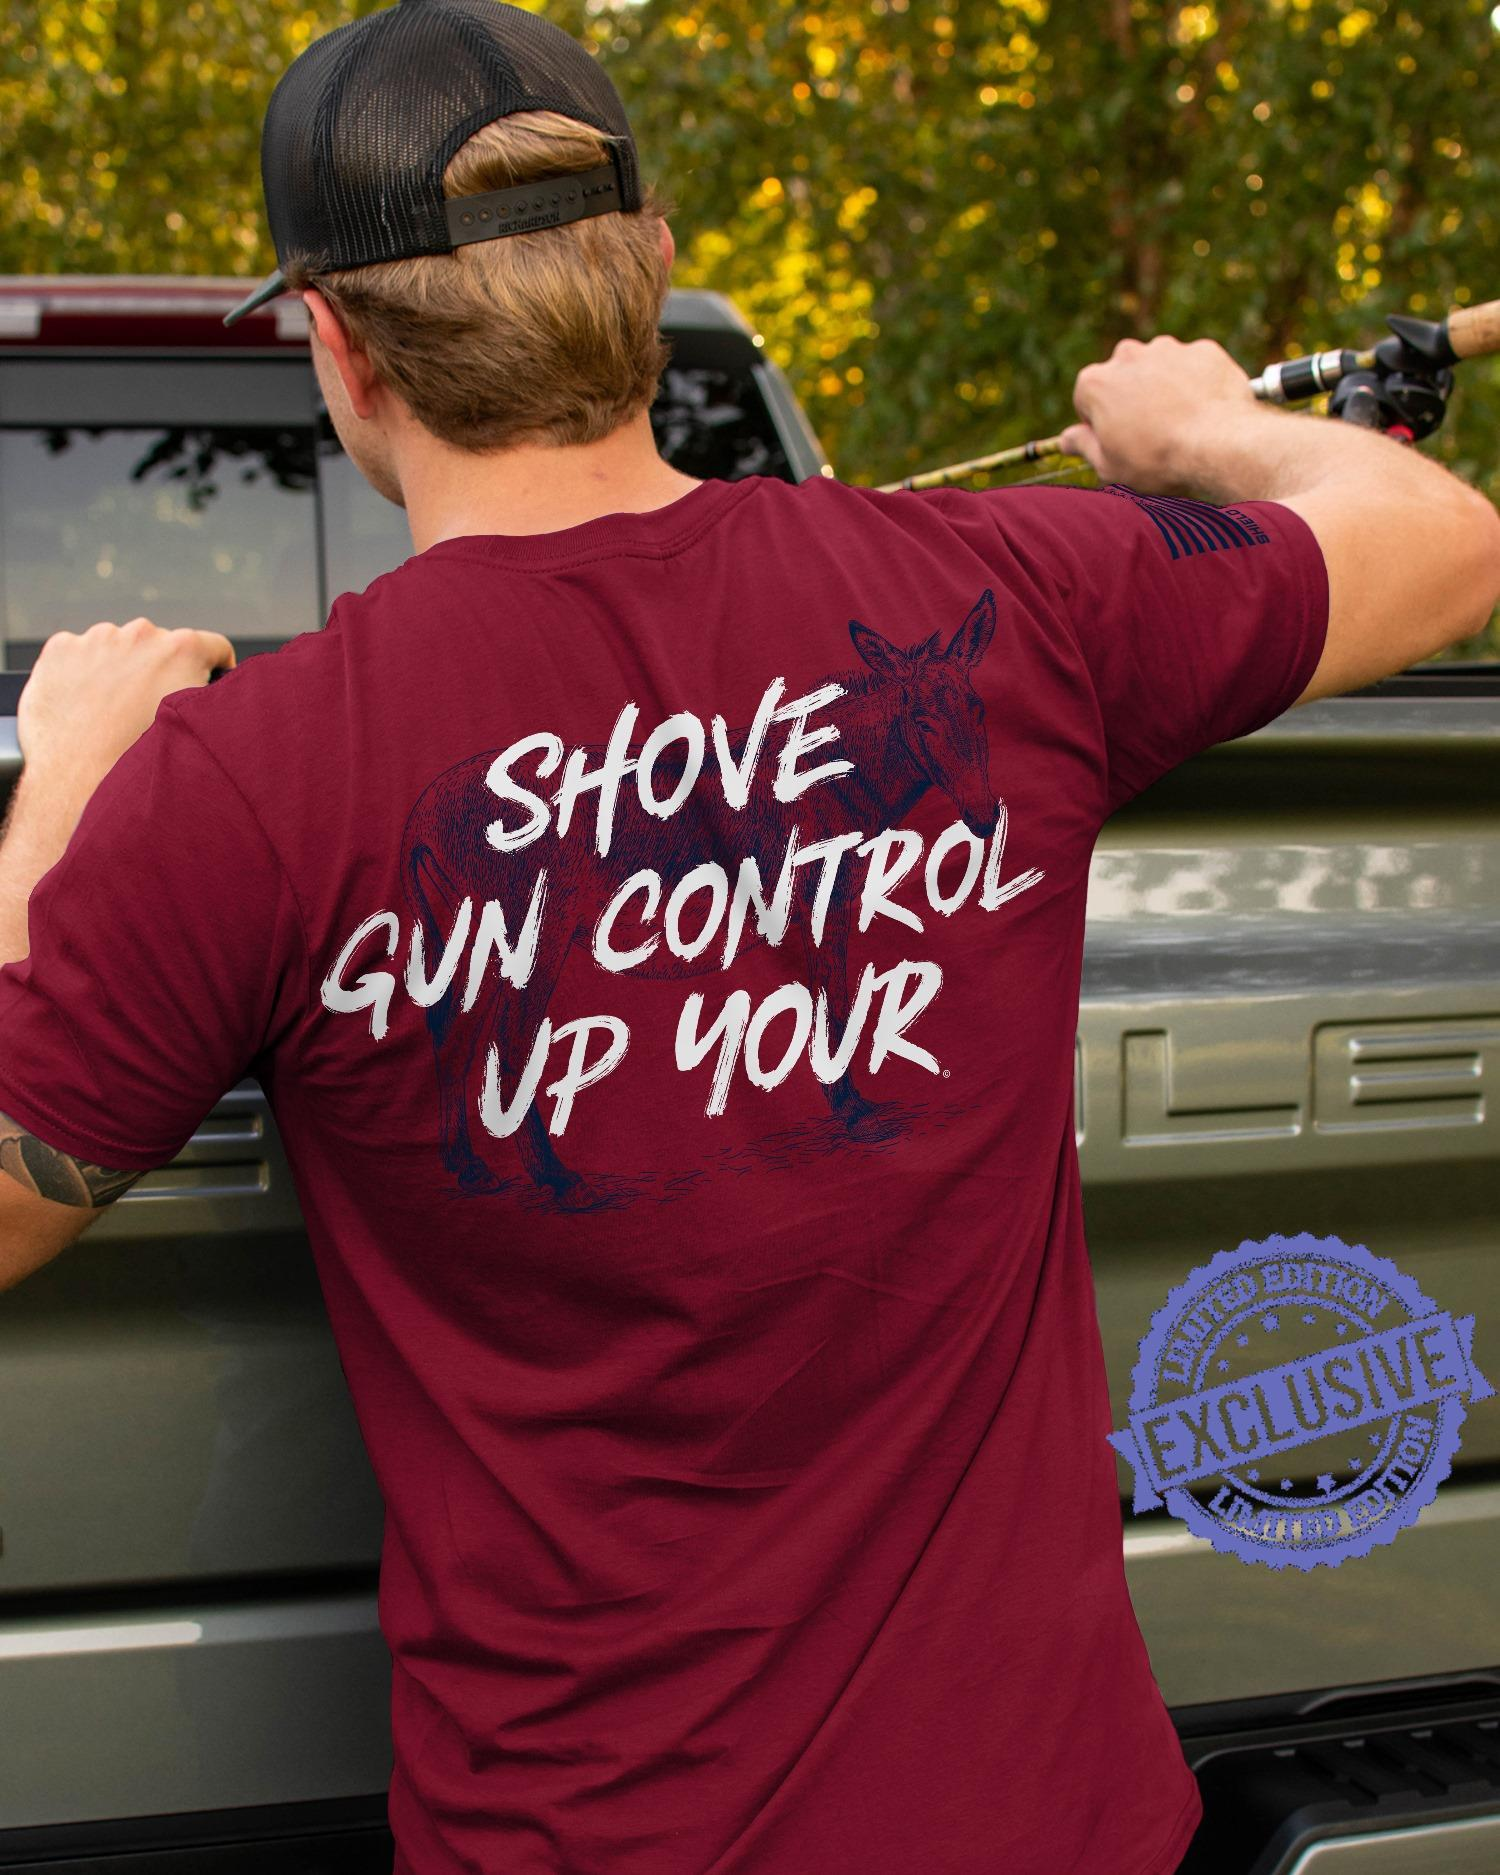 Shove gun control up your shirt